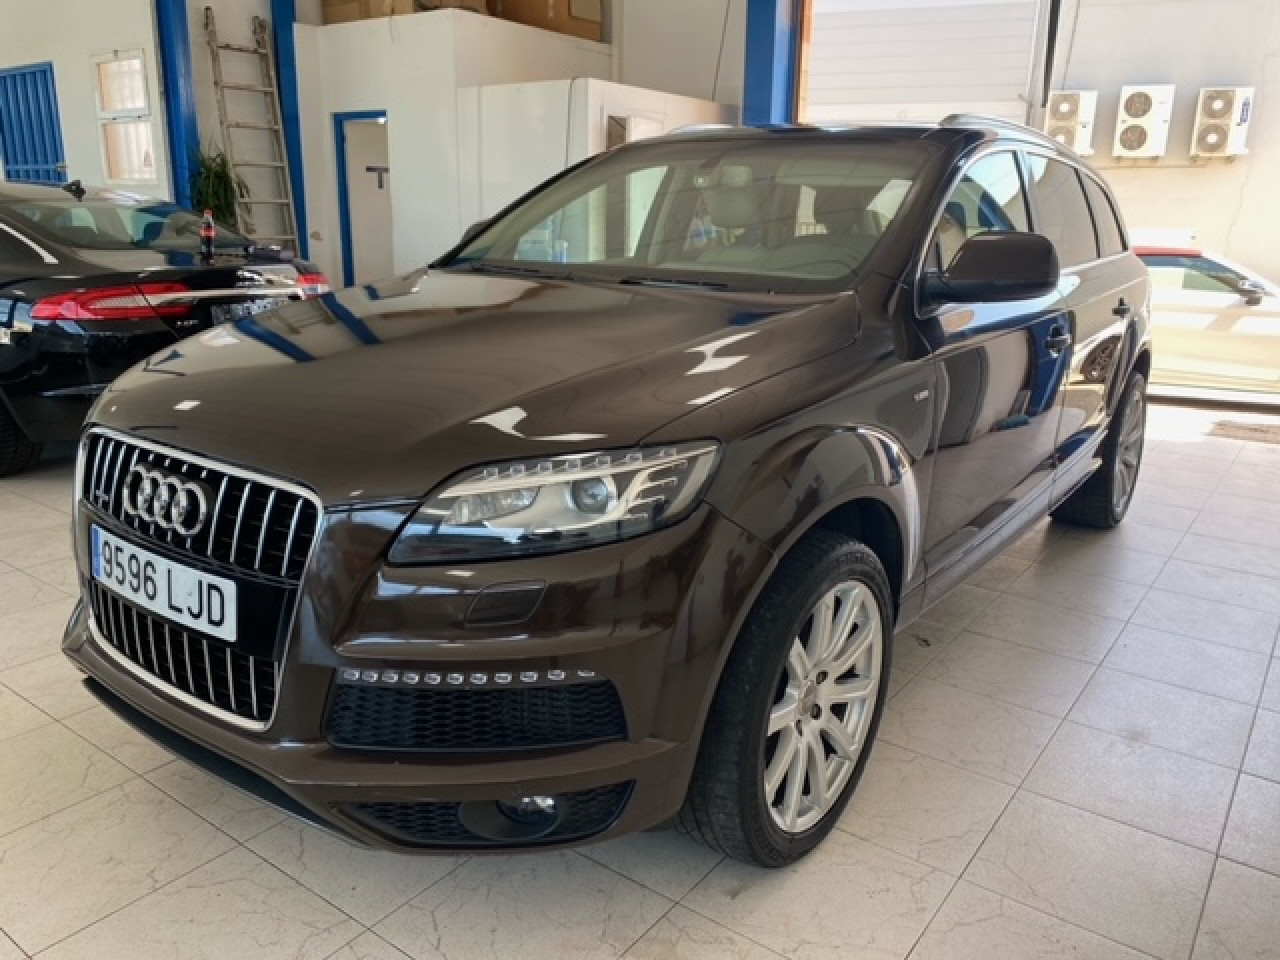 Audi Q7 4.2 Tdi Quattro S Line Photo